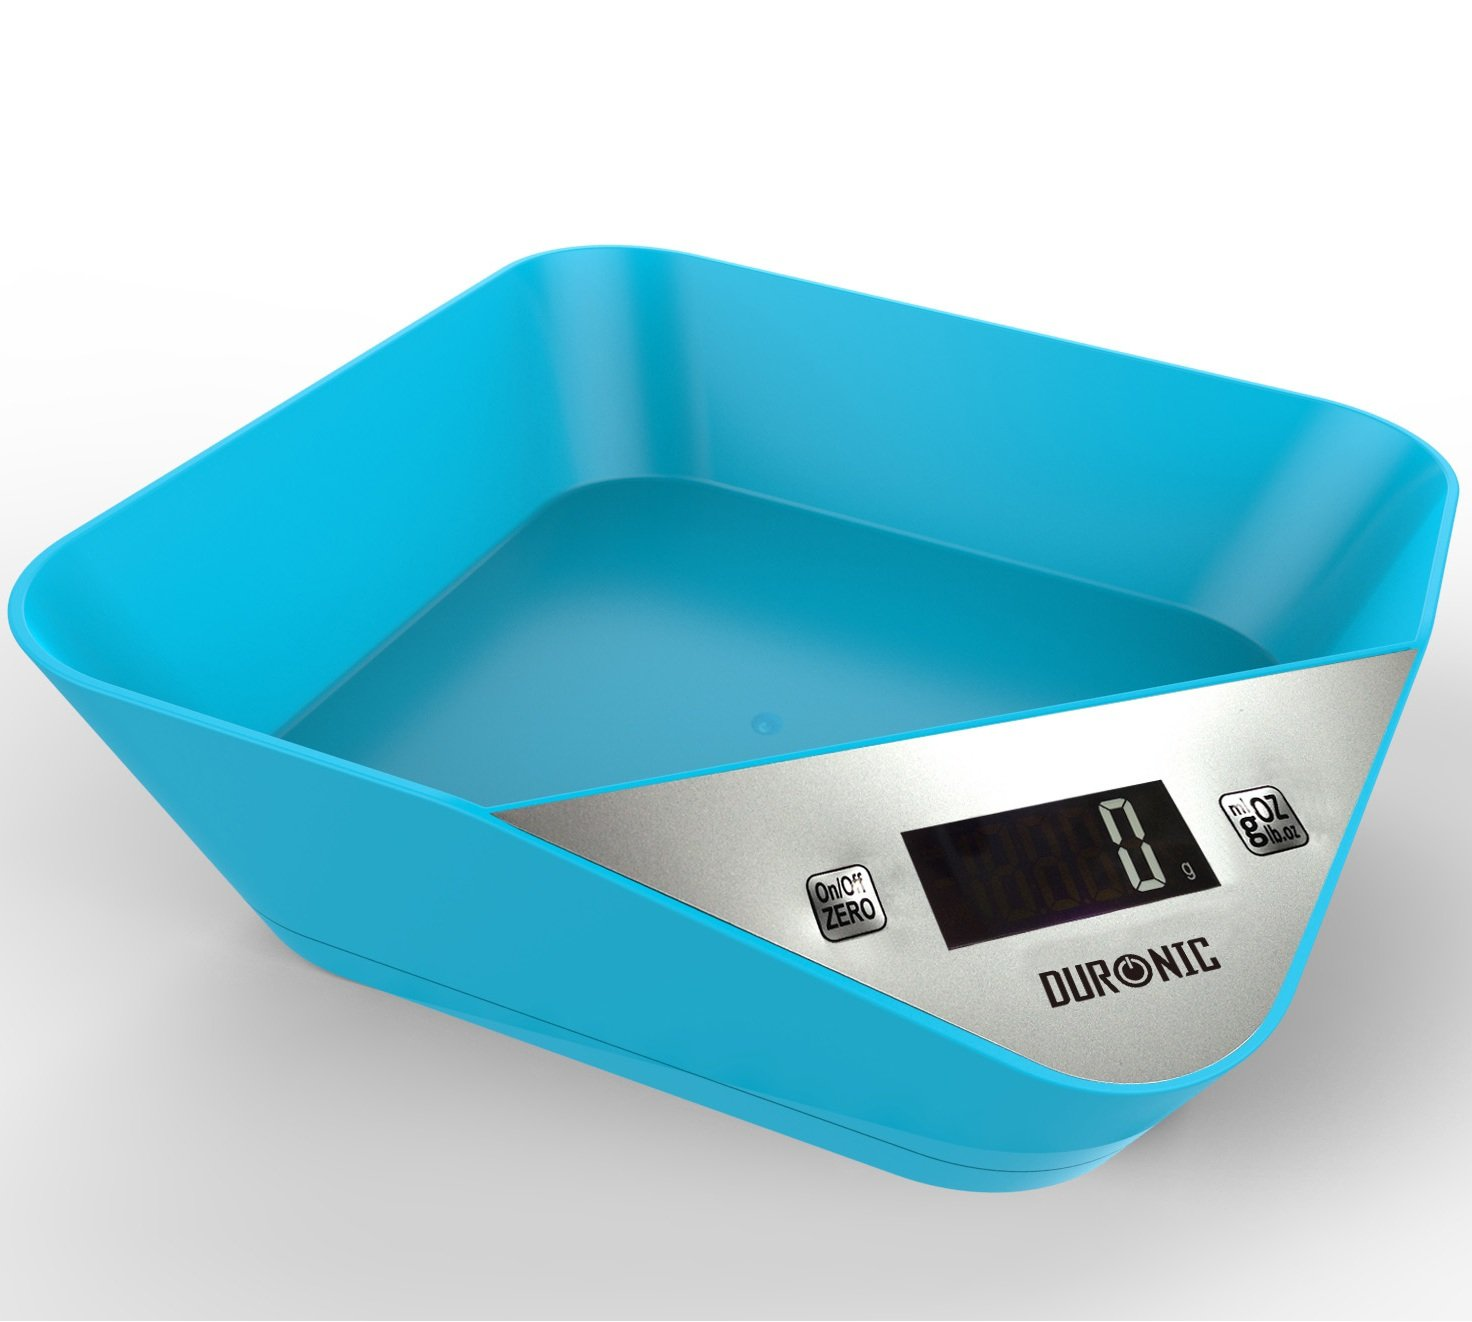 Duronic KS100BE Portable Design Electronic Bowl Kitchen Scales